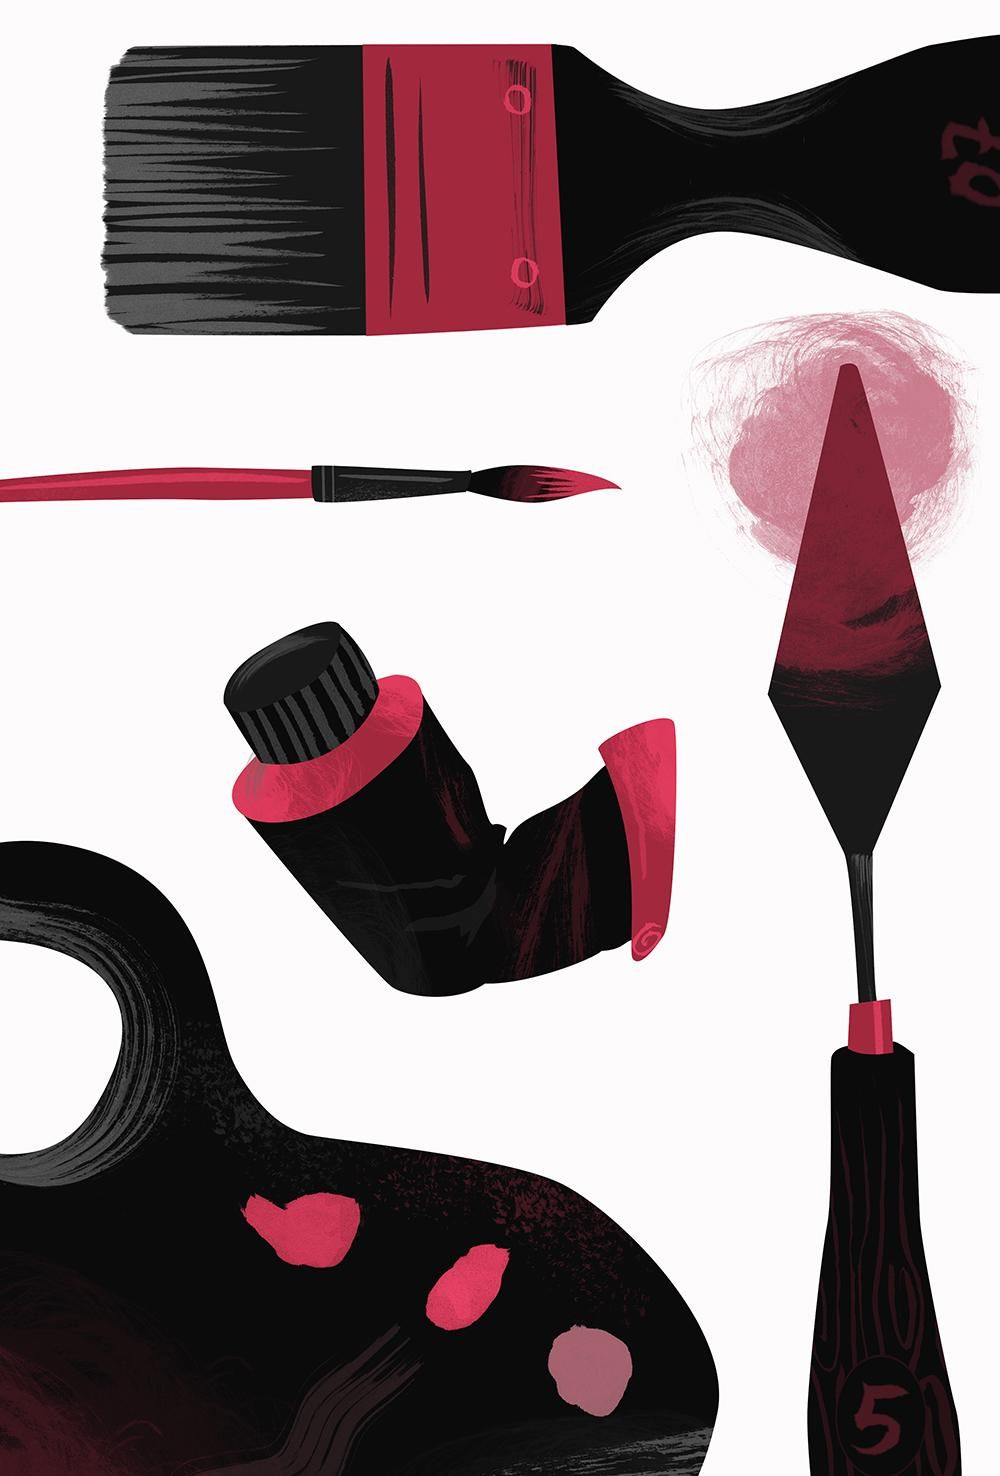 Painting tools - image 3 - student project